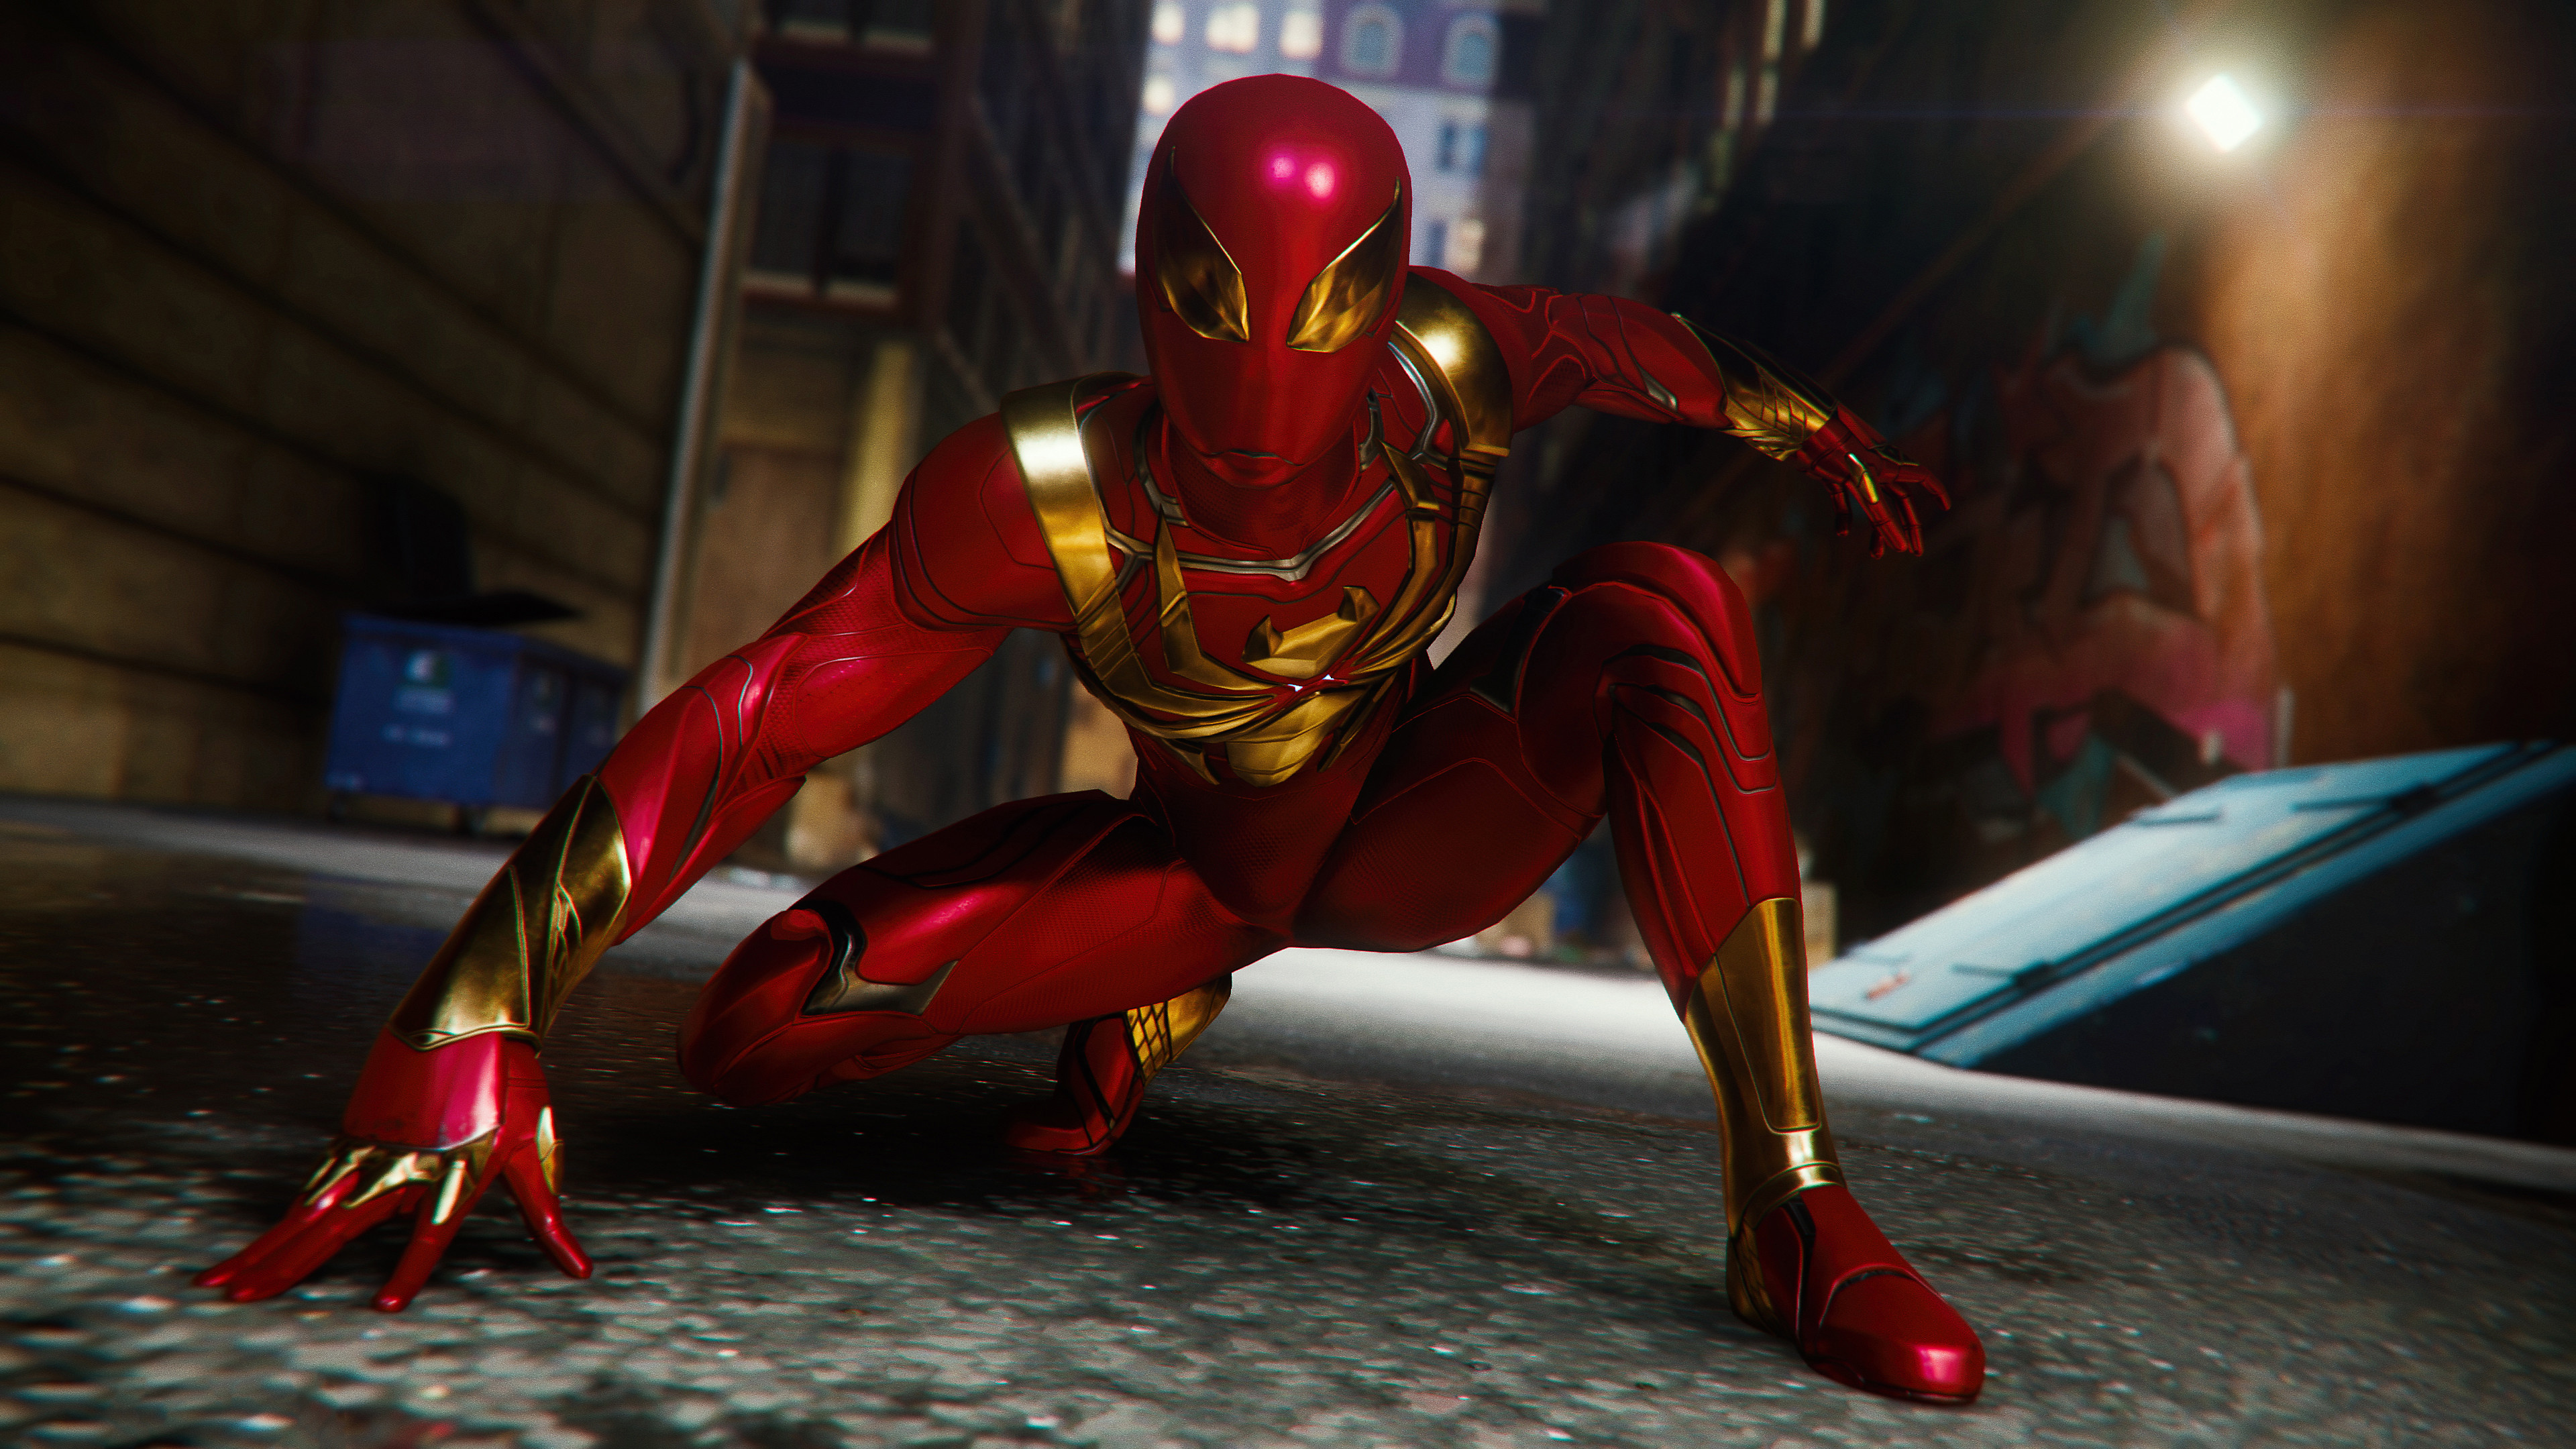 Spiderman Ps4 Red Suit Hd Games 4k Wallpapers Images